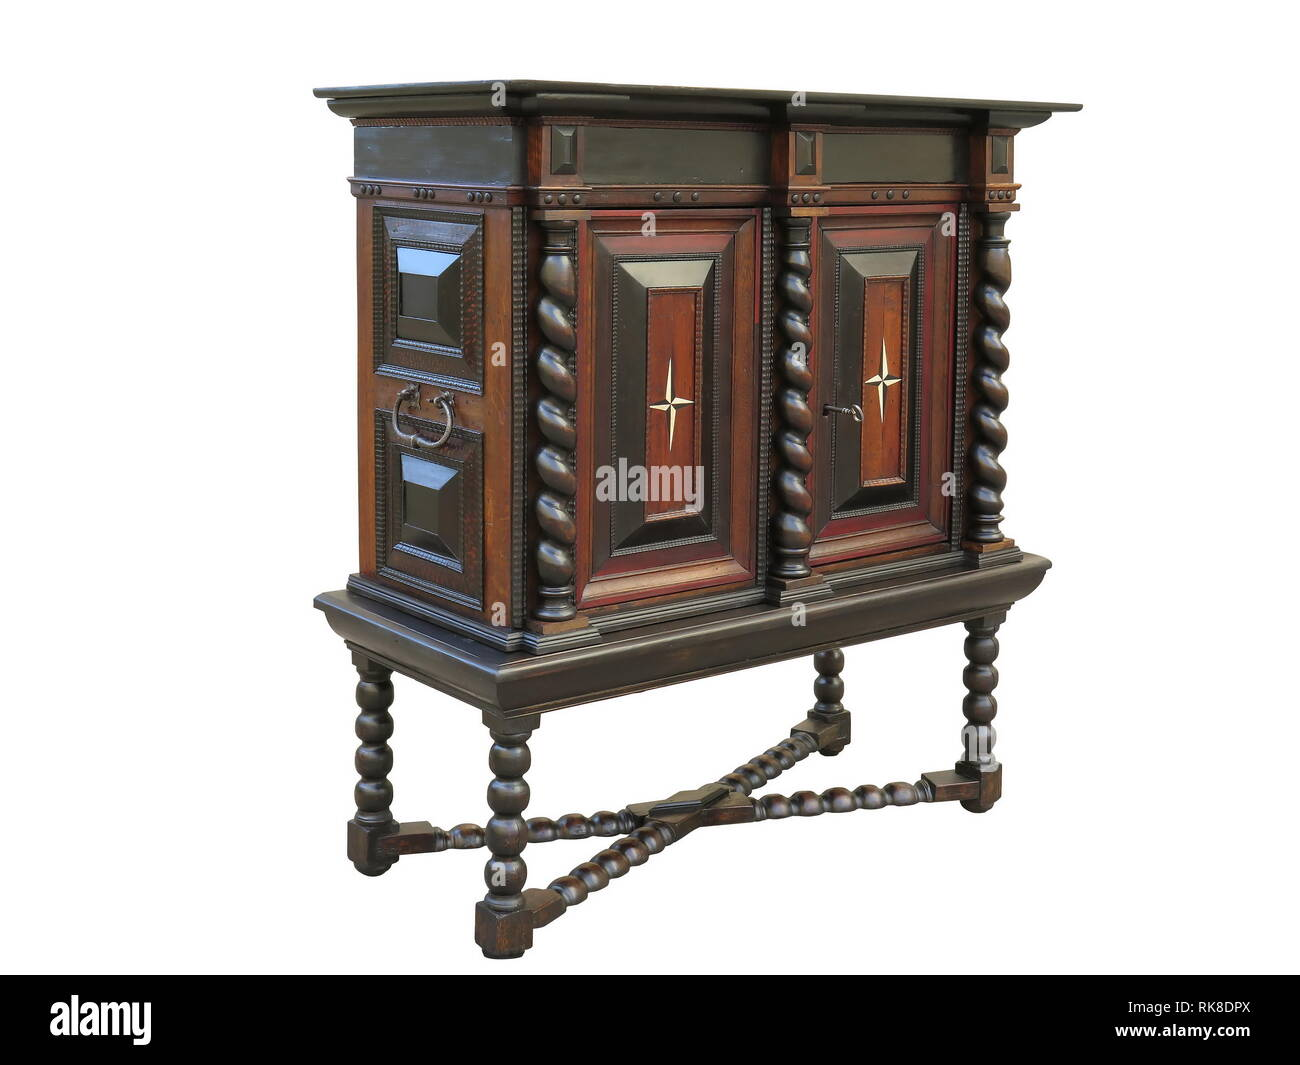 Early Baroque cabinet on stand. Cabinet made in Holland about 1670 to 1700 - Stock Image